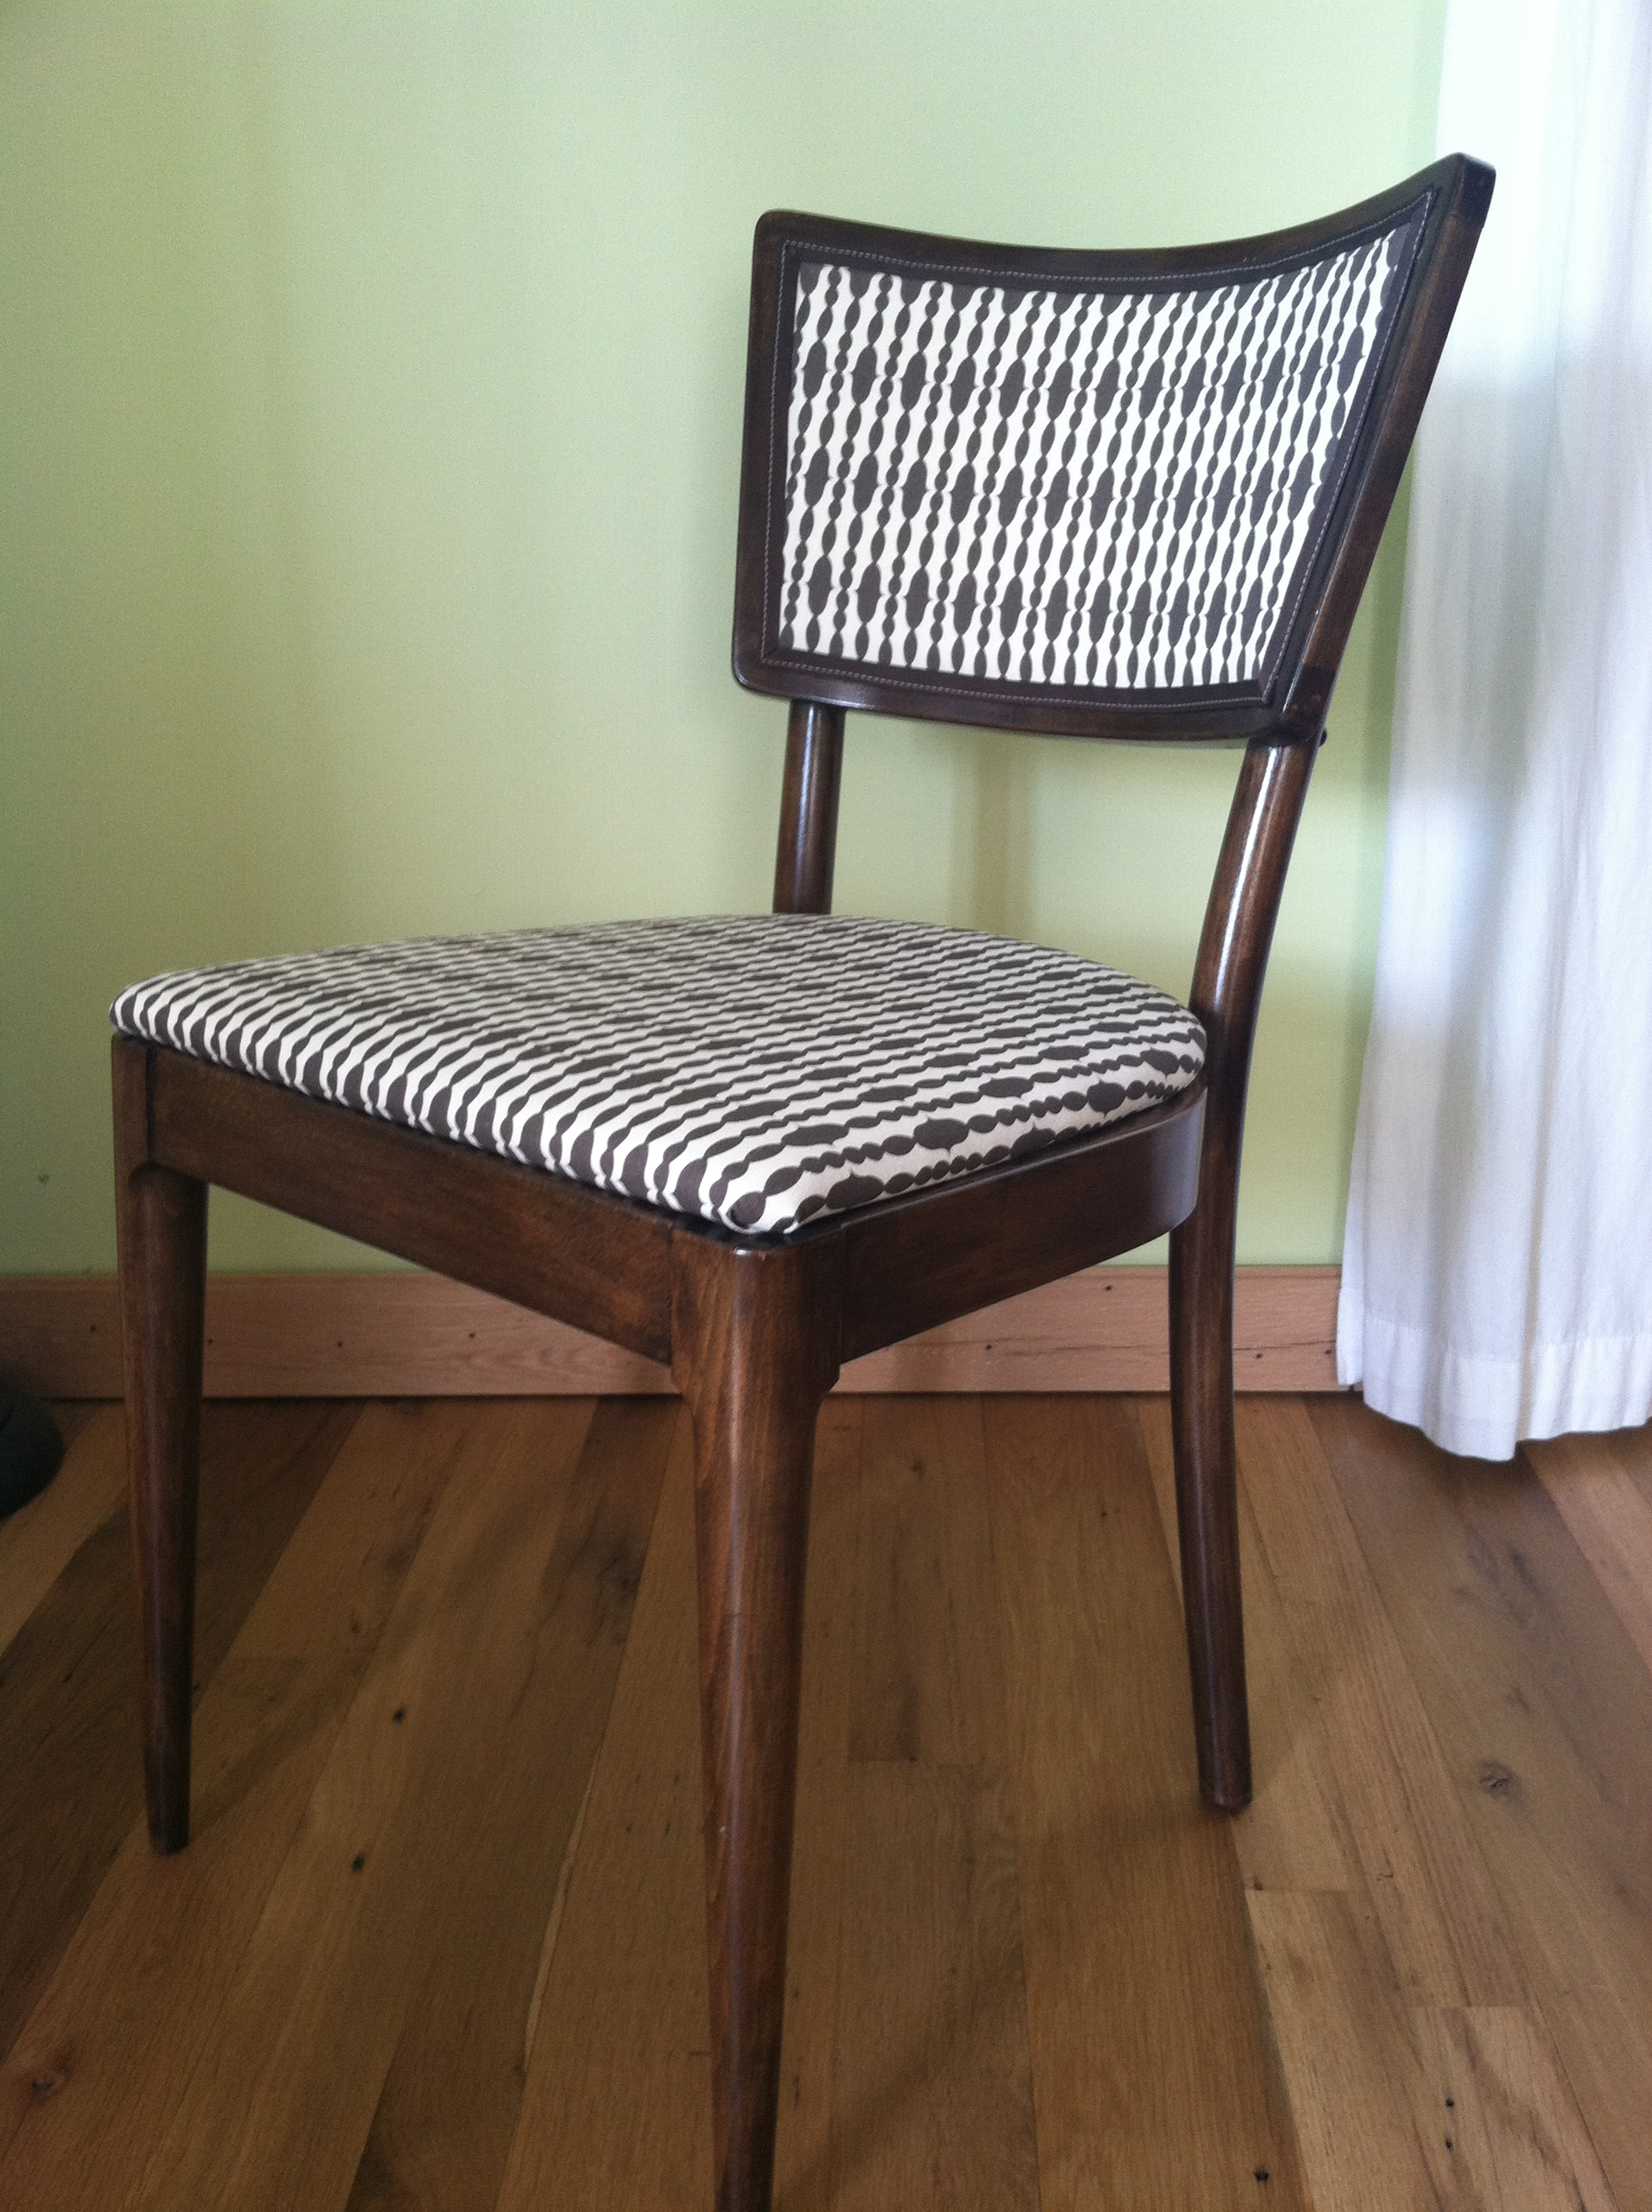 The cane back chair makeover